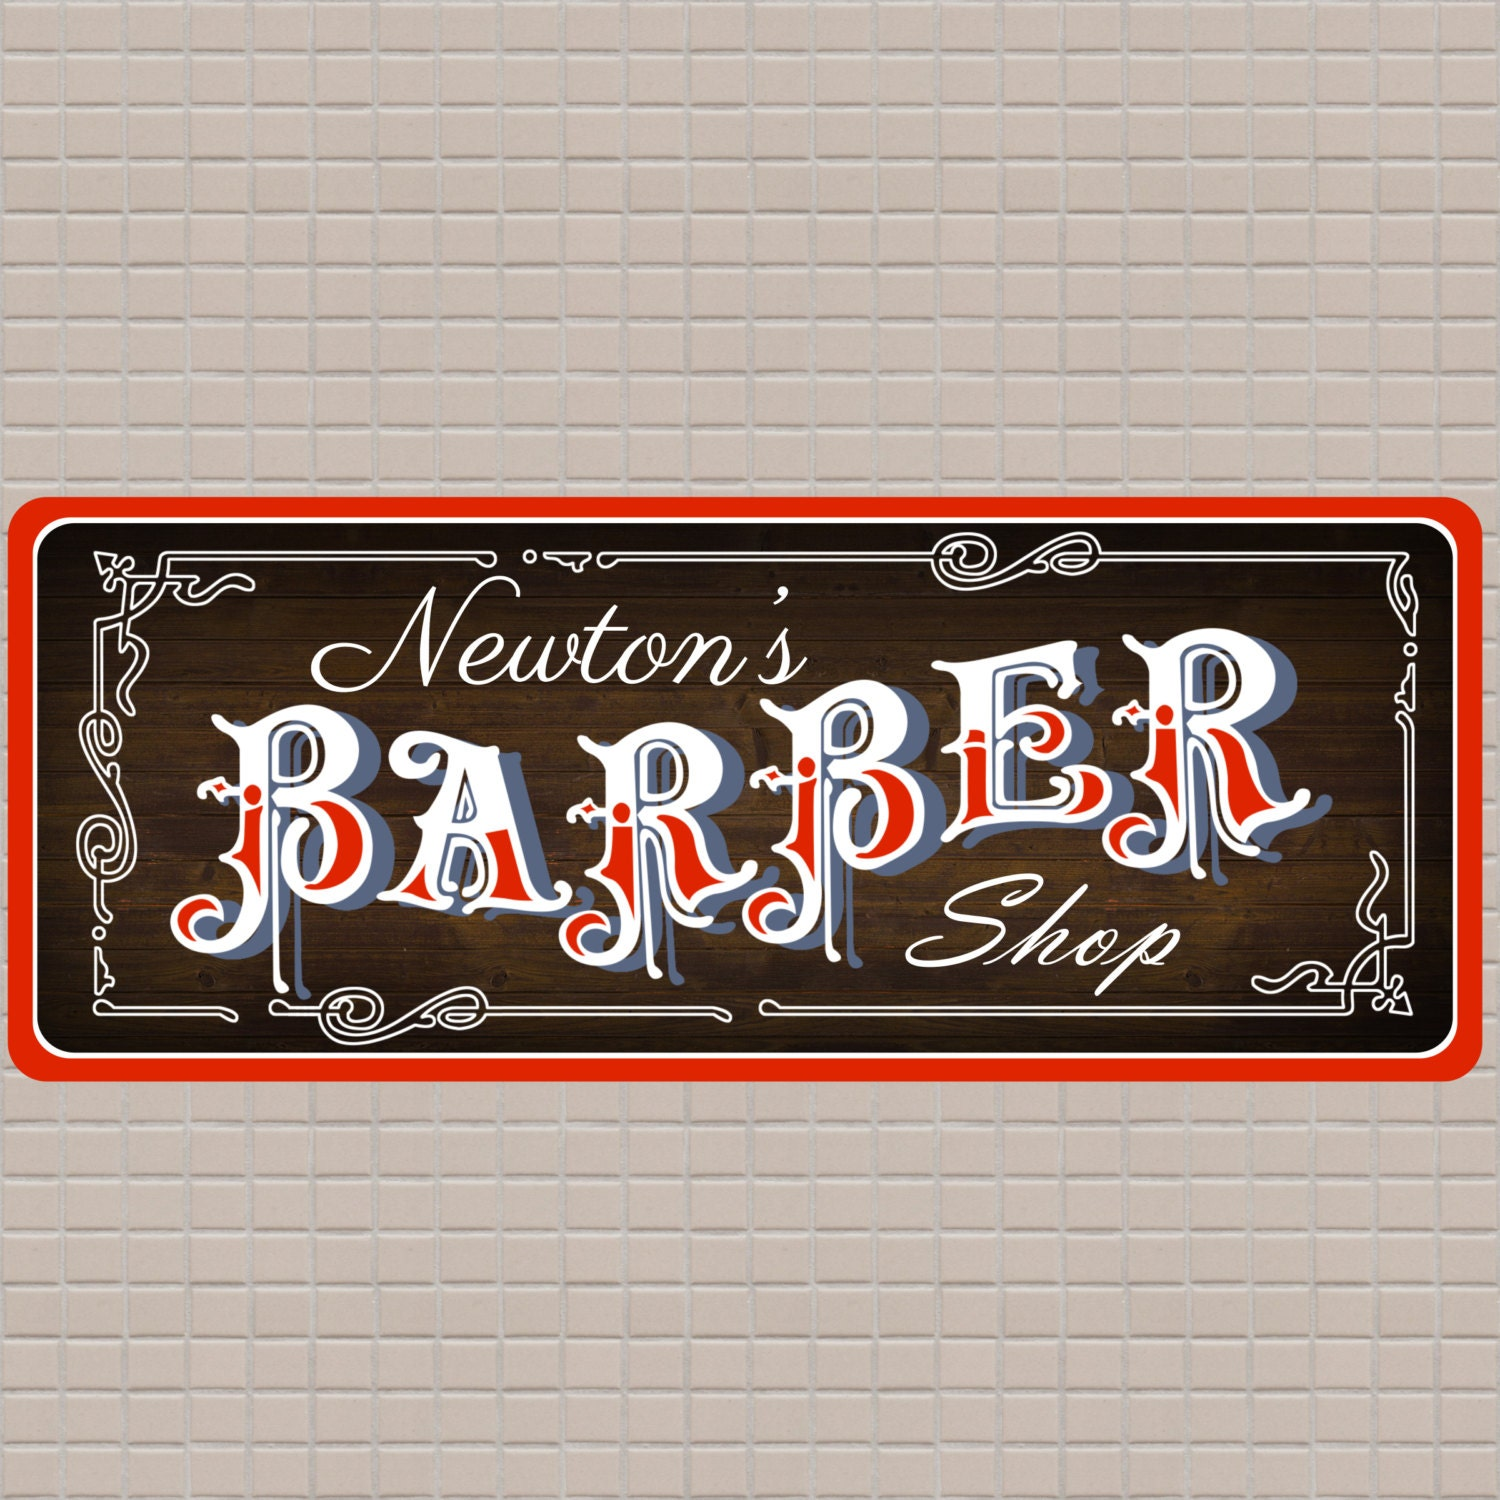 Antique barber shop sign - Old Time Barber Shop Personalized Sign With Wood Plank Background Custom Barber Shop Sign